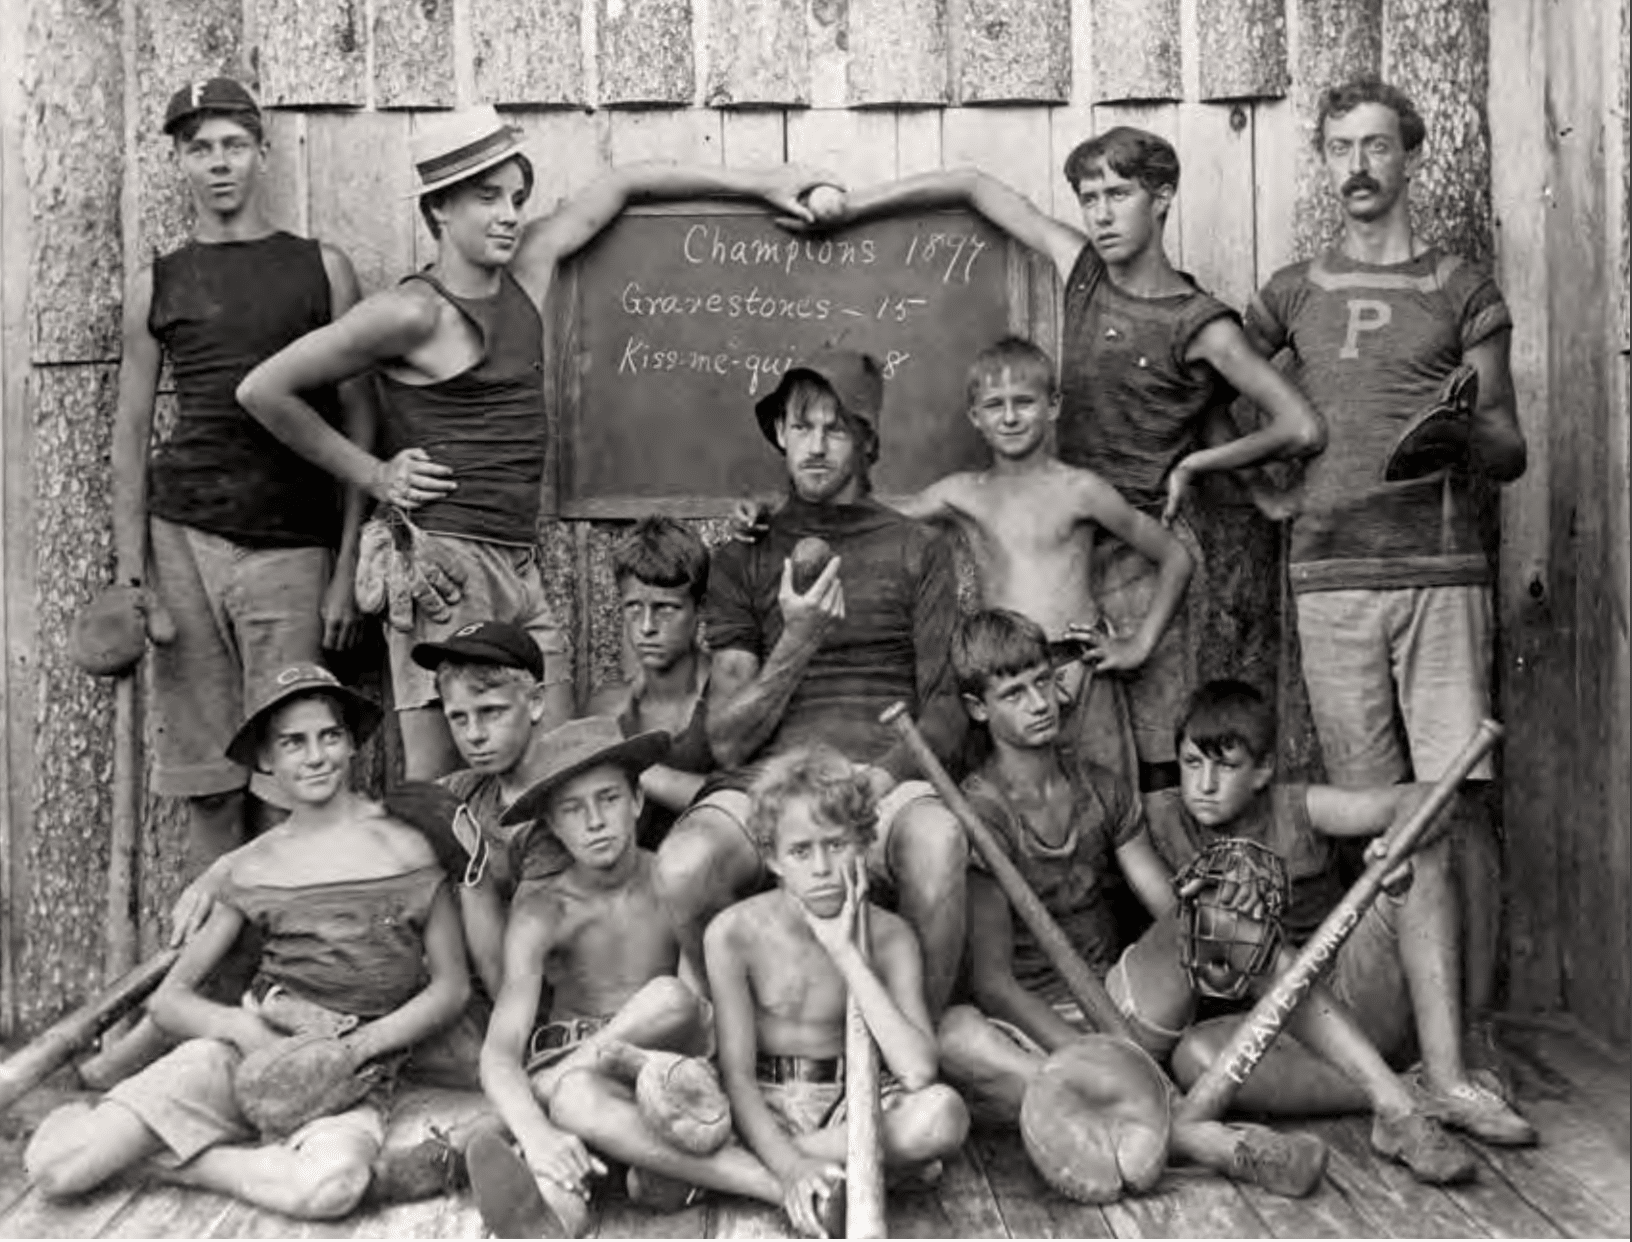 old black and white photo of young boys with baseball gear